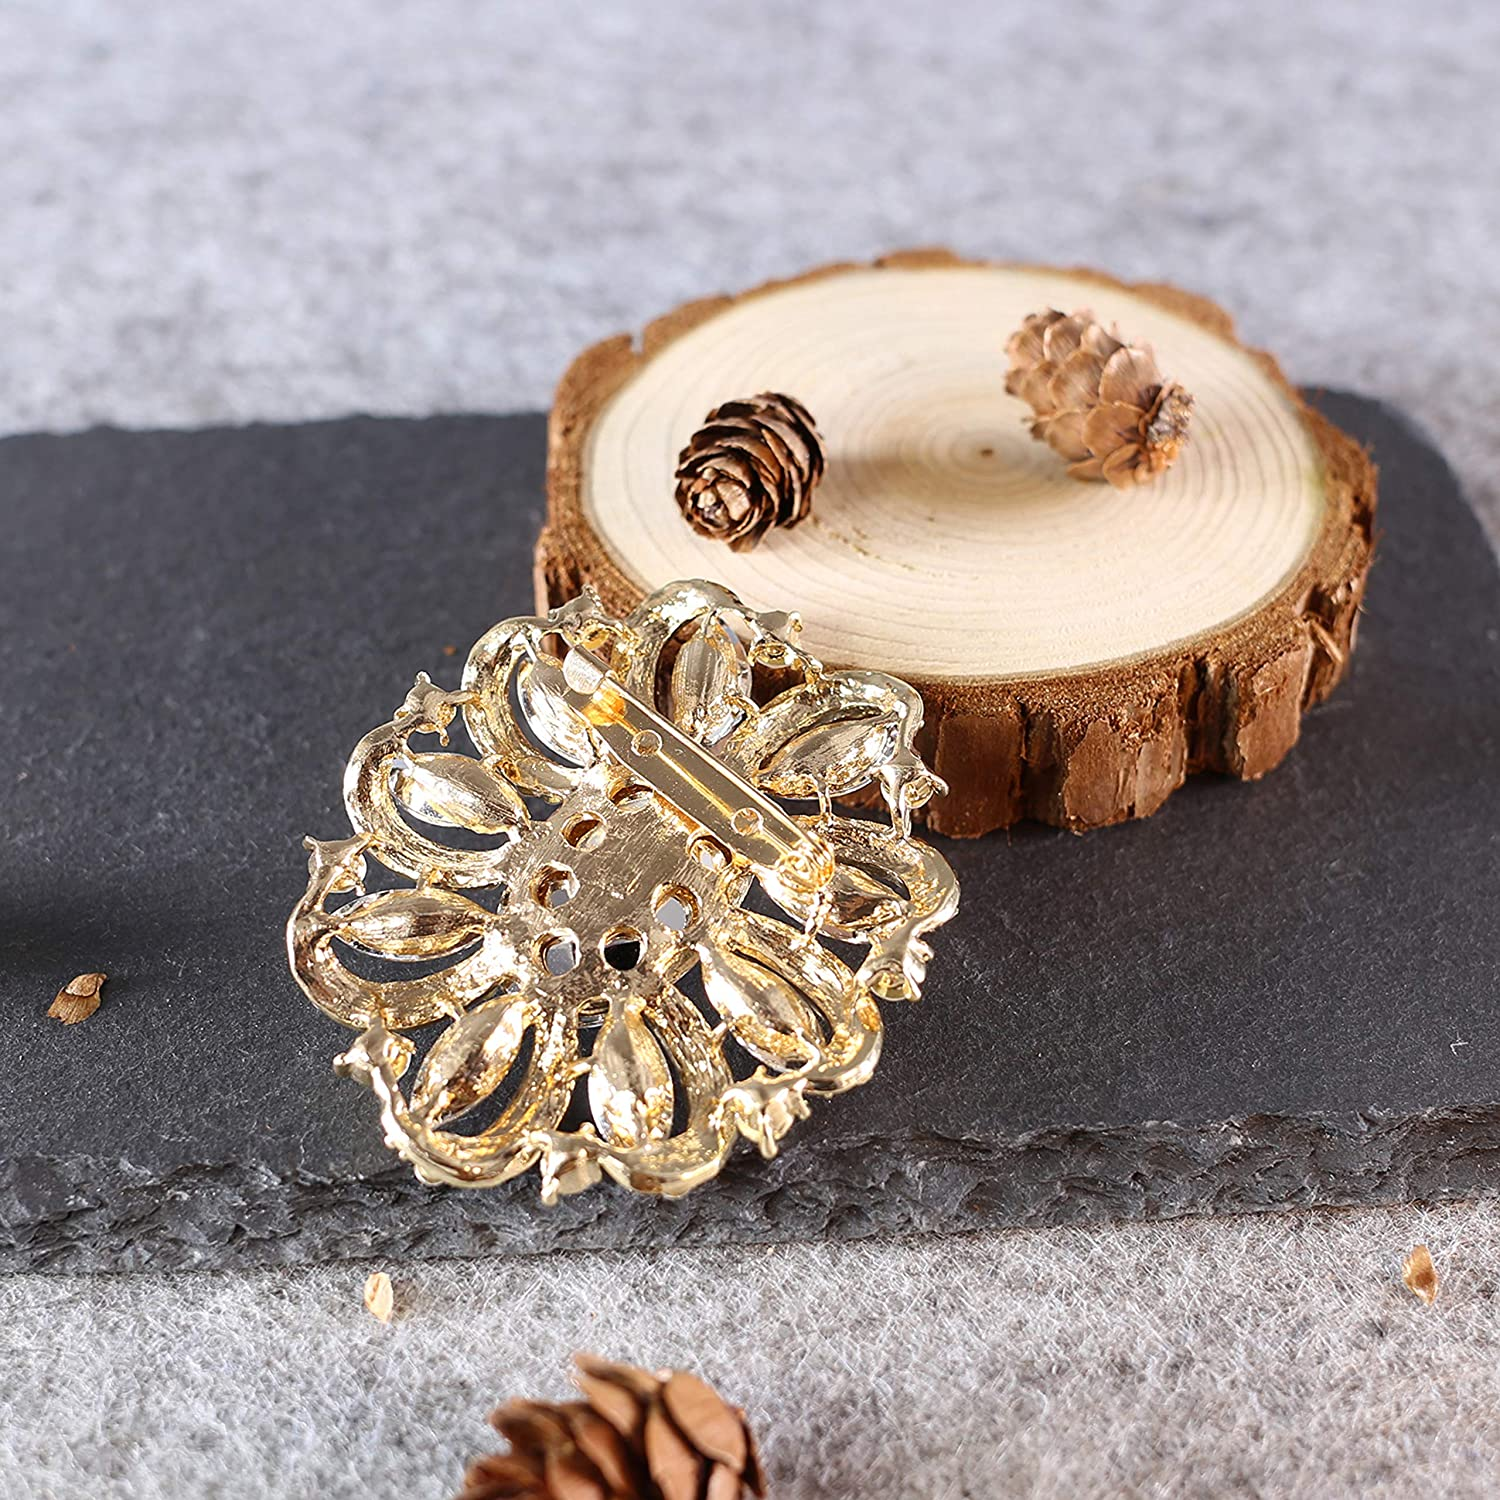 Premium Black,Red,Blue Multiple Crystal Rhinestones Bouquet Shell Brooch with Gold and Silver Tone Great for Wife,Sisters,Friends,Daily Wear or Dating ZUOZUOYA Vintage Flower Brooch for Women